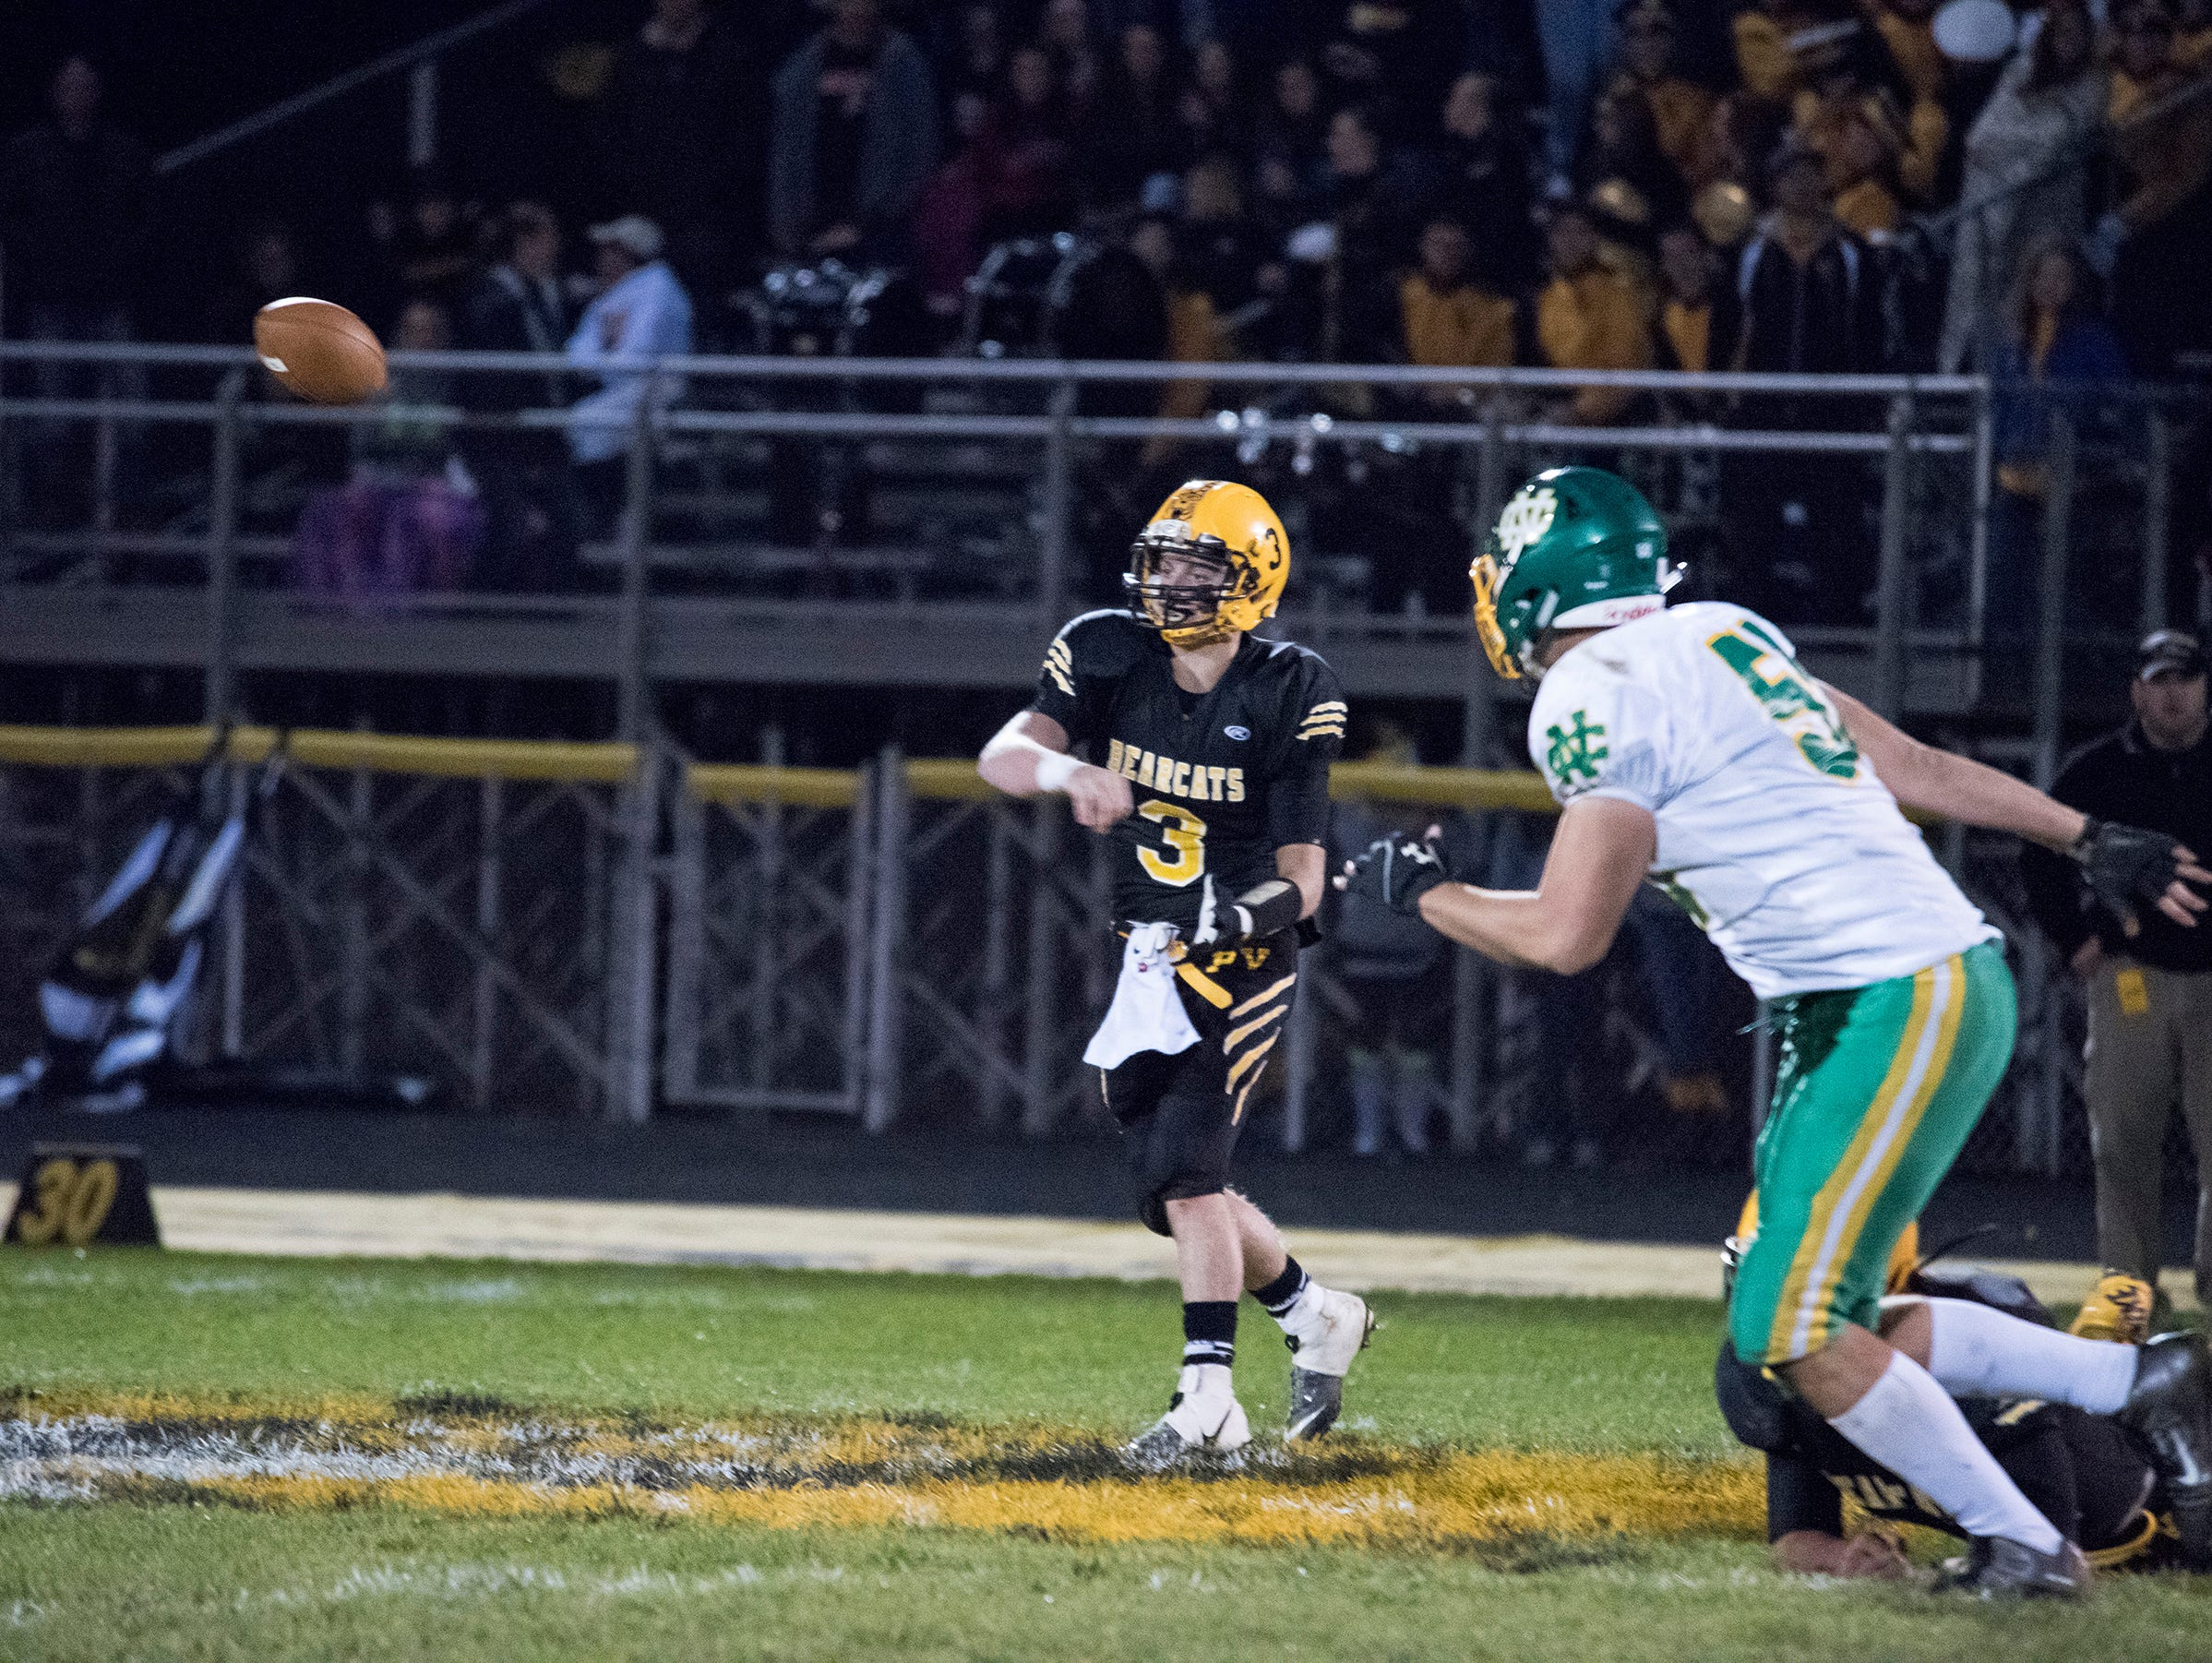 Paint Valley quarterback Anthony McFadden throws a pass during the first quarter Saturday night.